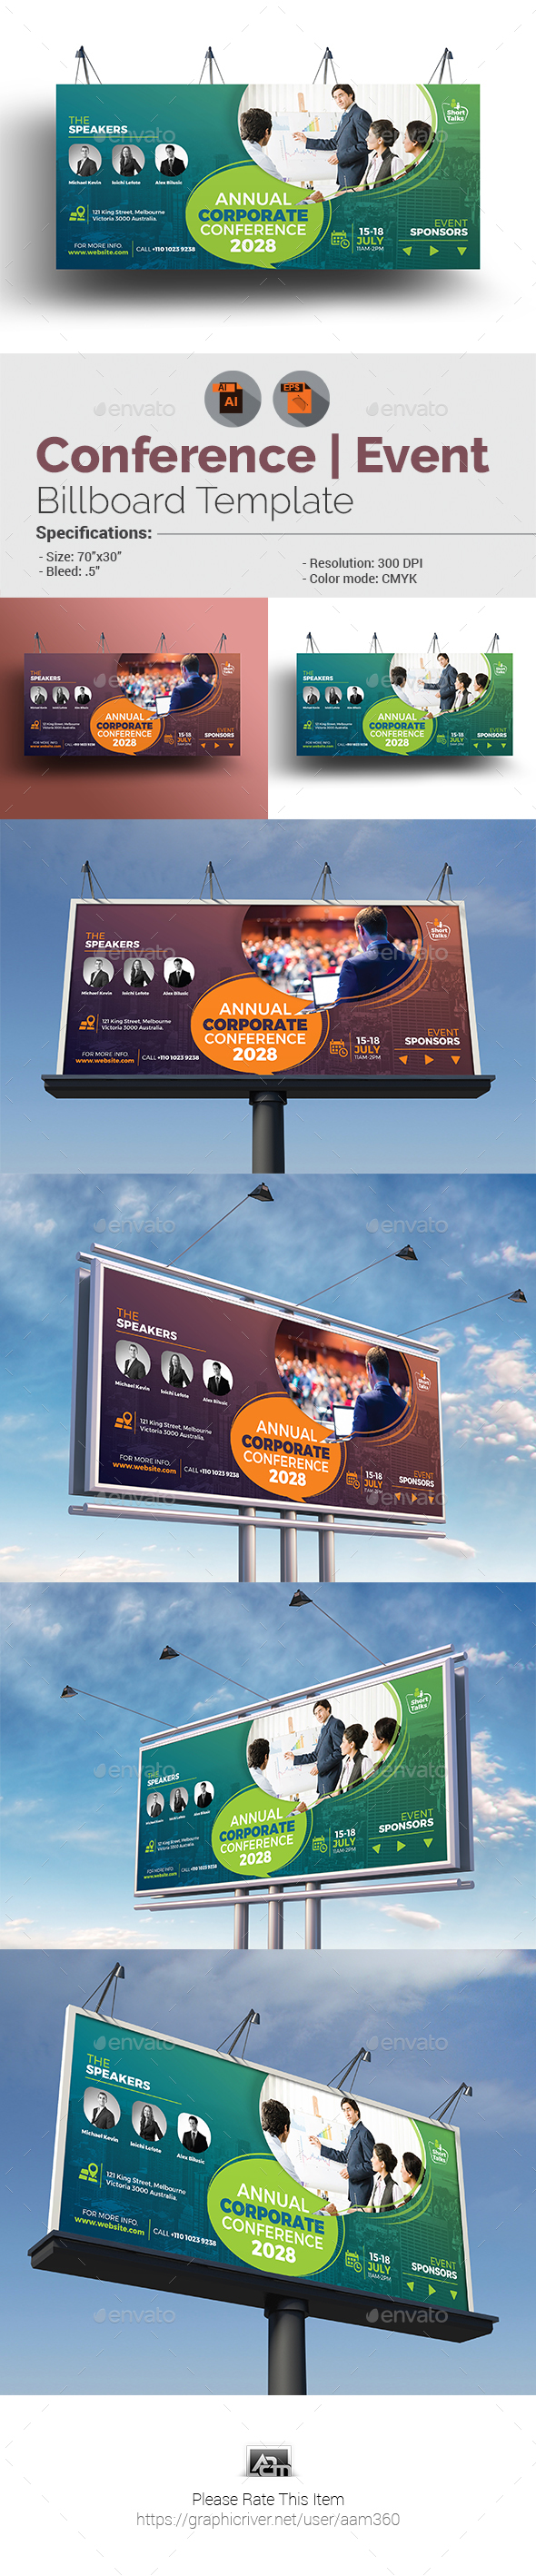 Annual Event/Conference Billboard Template